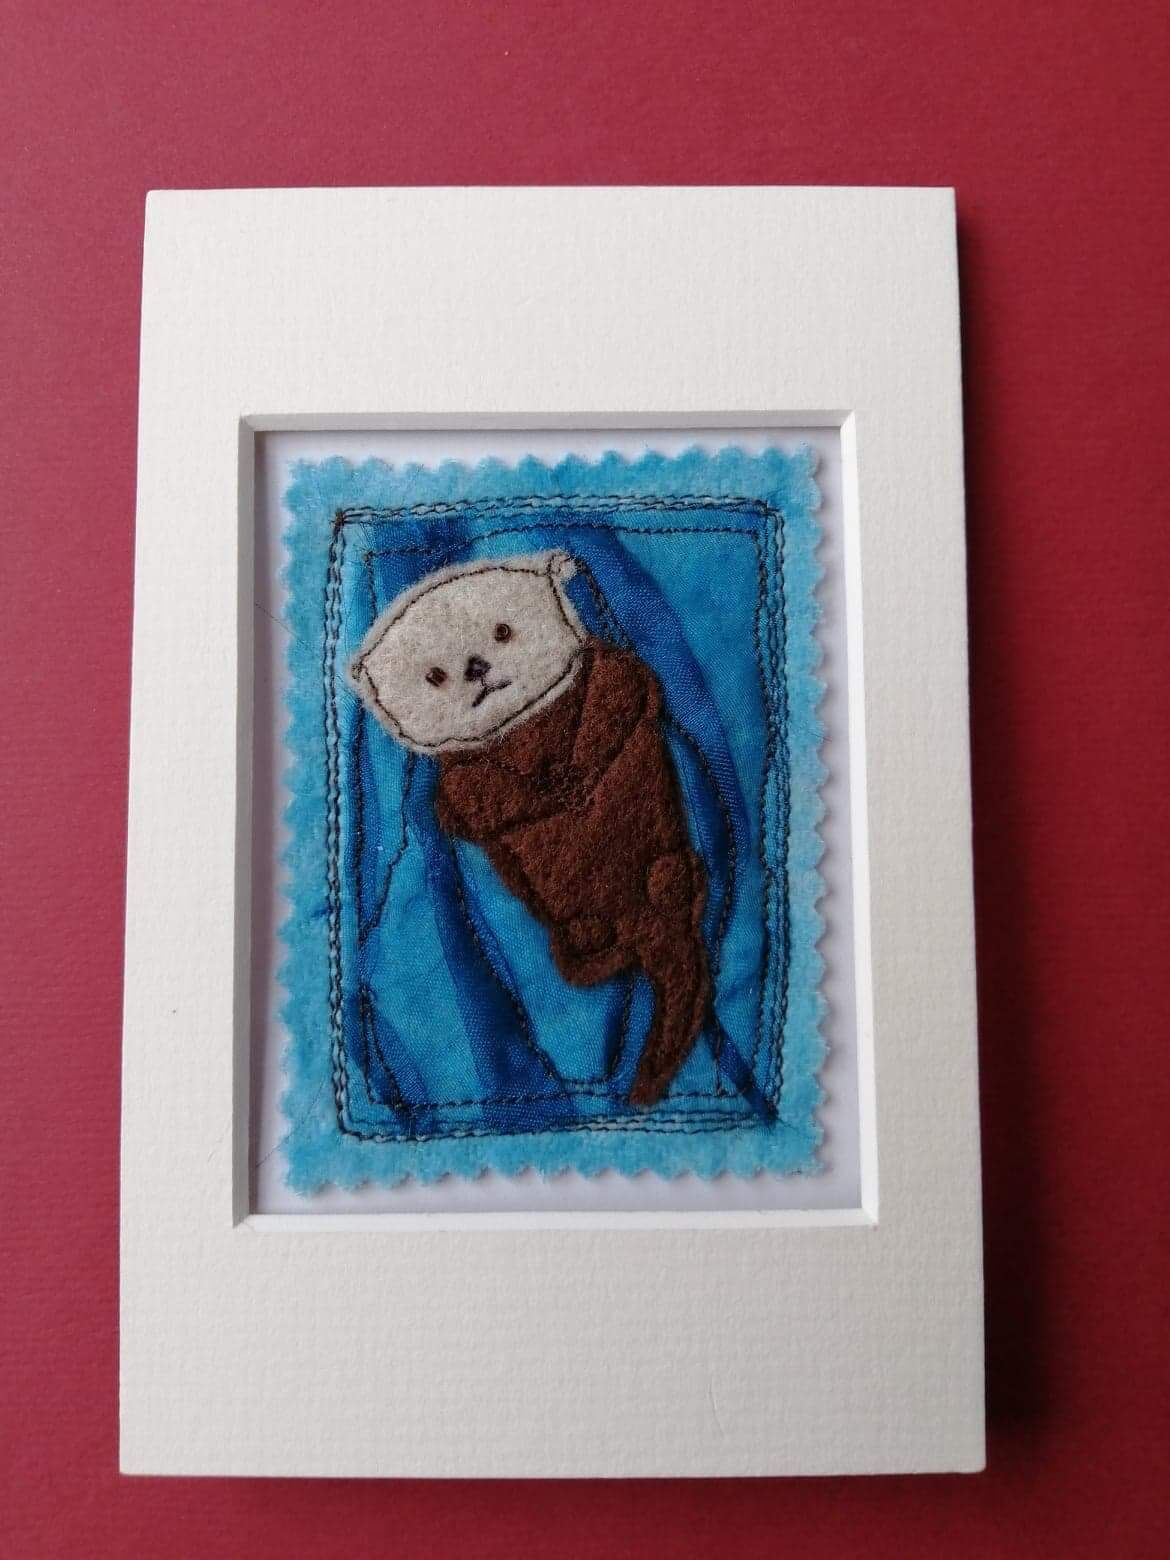 Mixed media sea otter picture